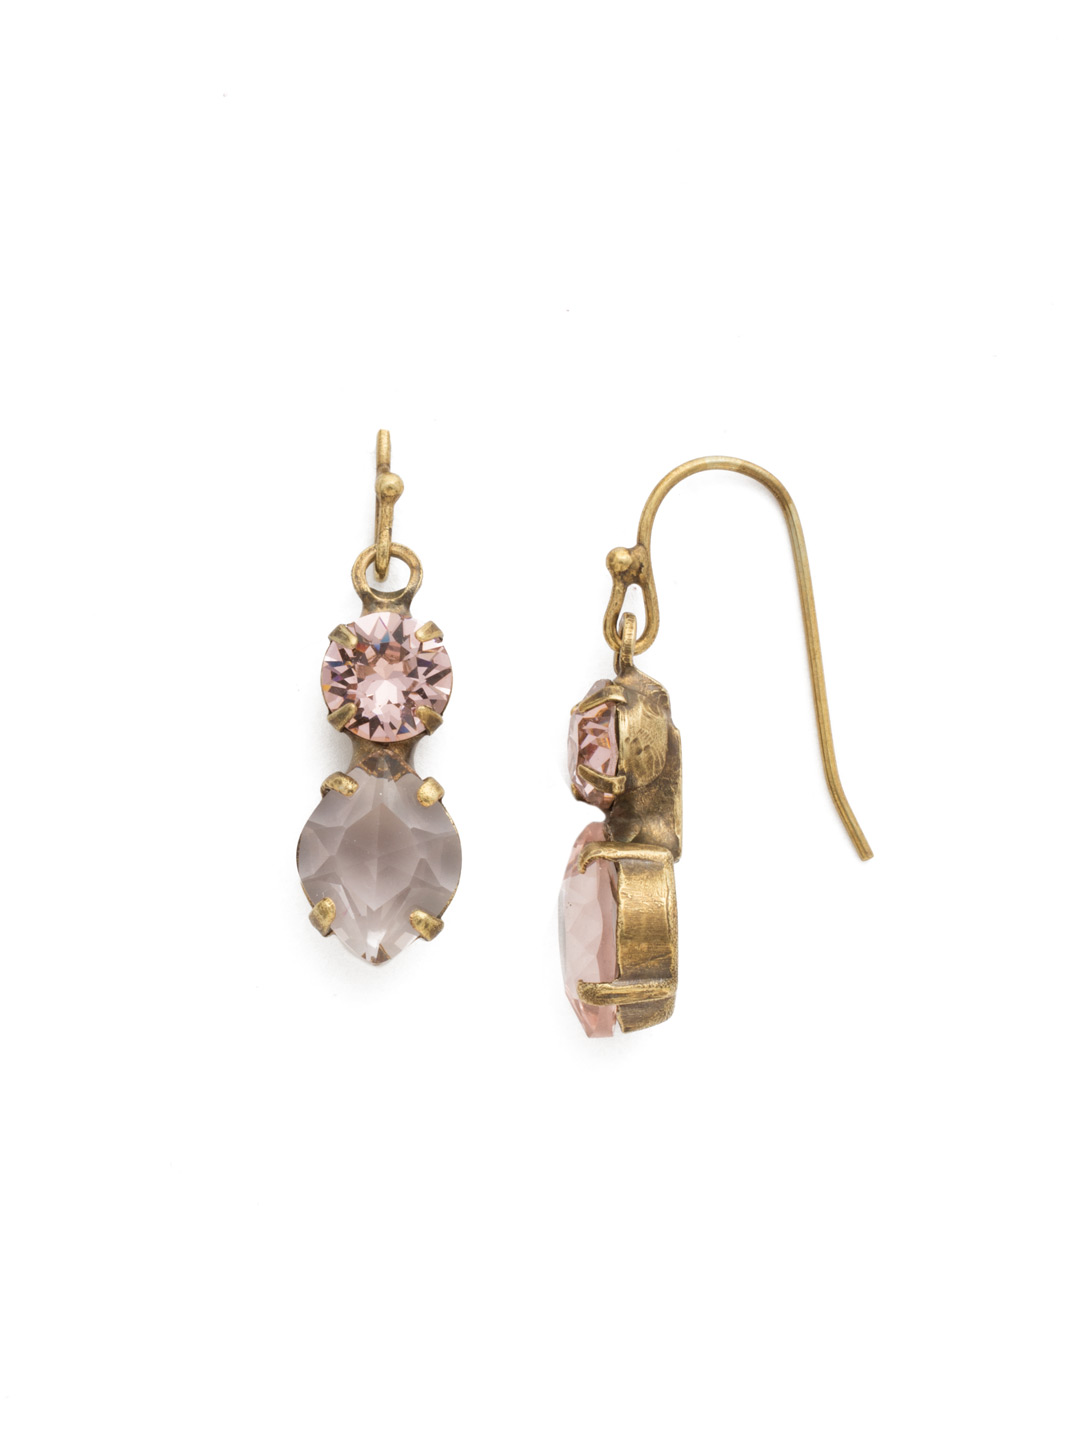 Majestic Marquise Earring in Vintage Rose